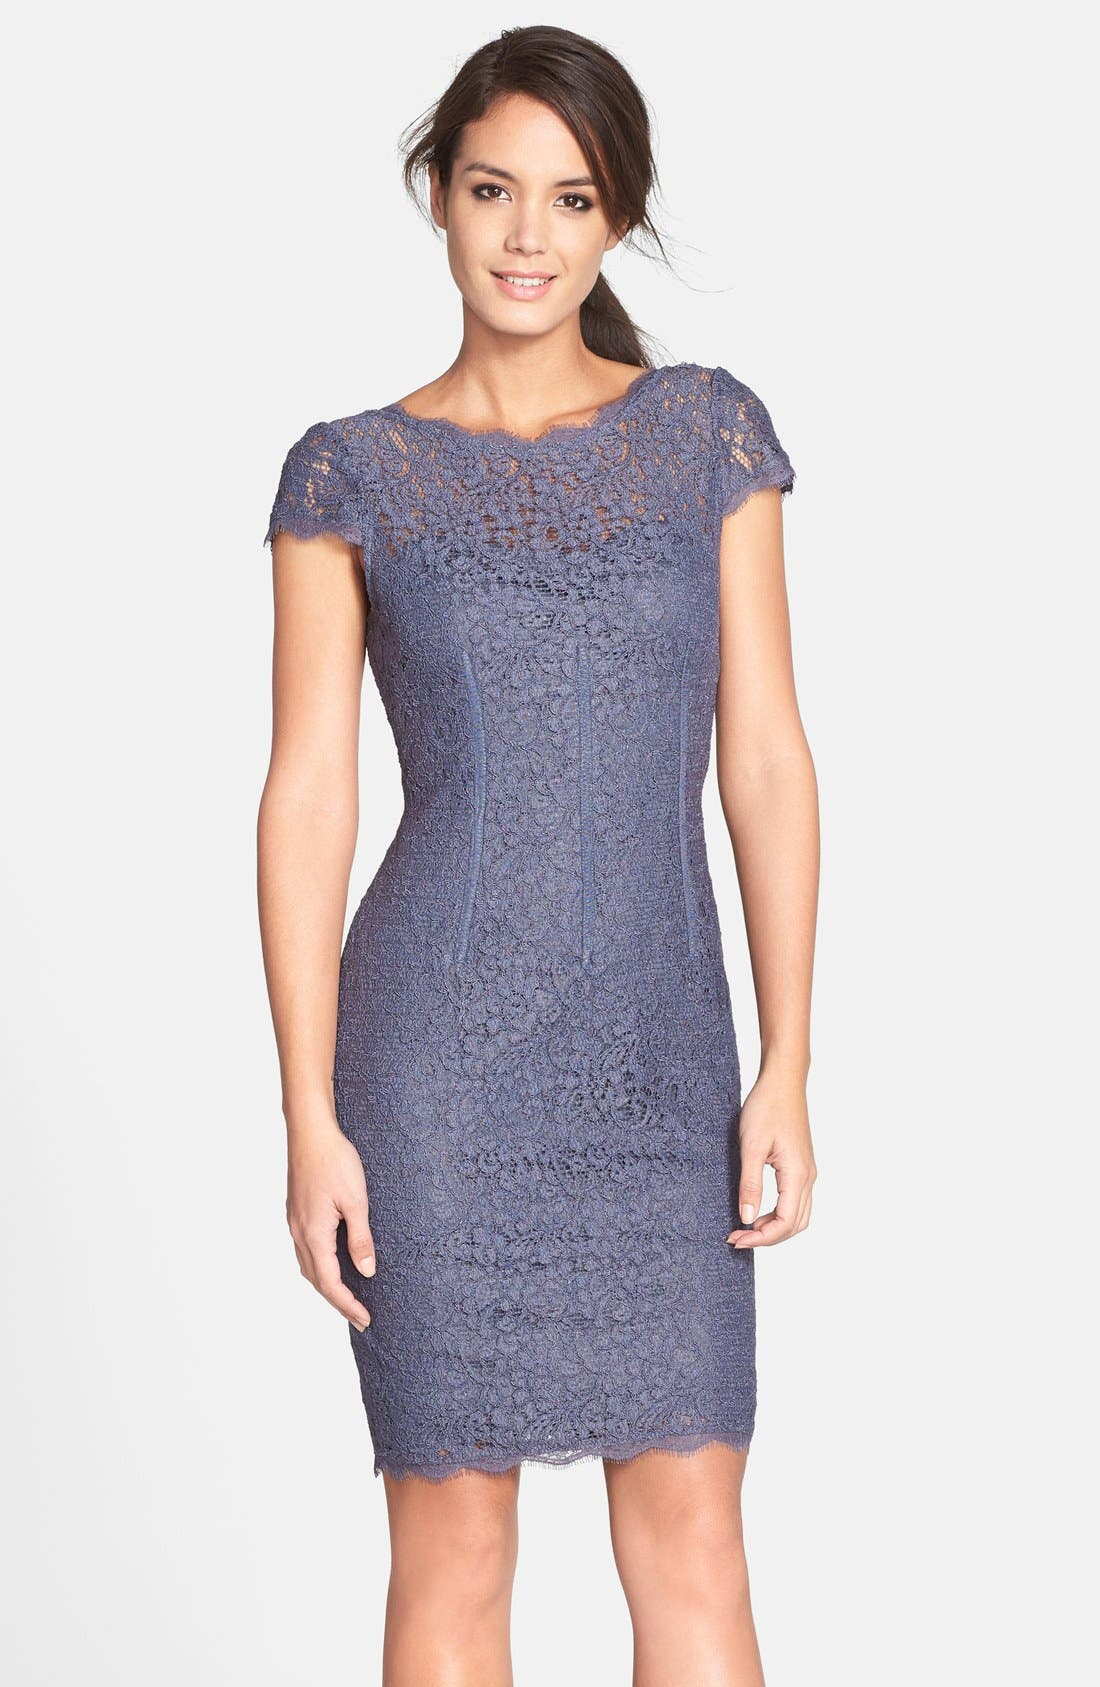 Main Image - Adrianna Papell Seam Detail Lace Cocktail Dress